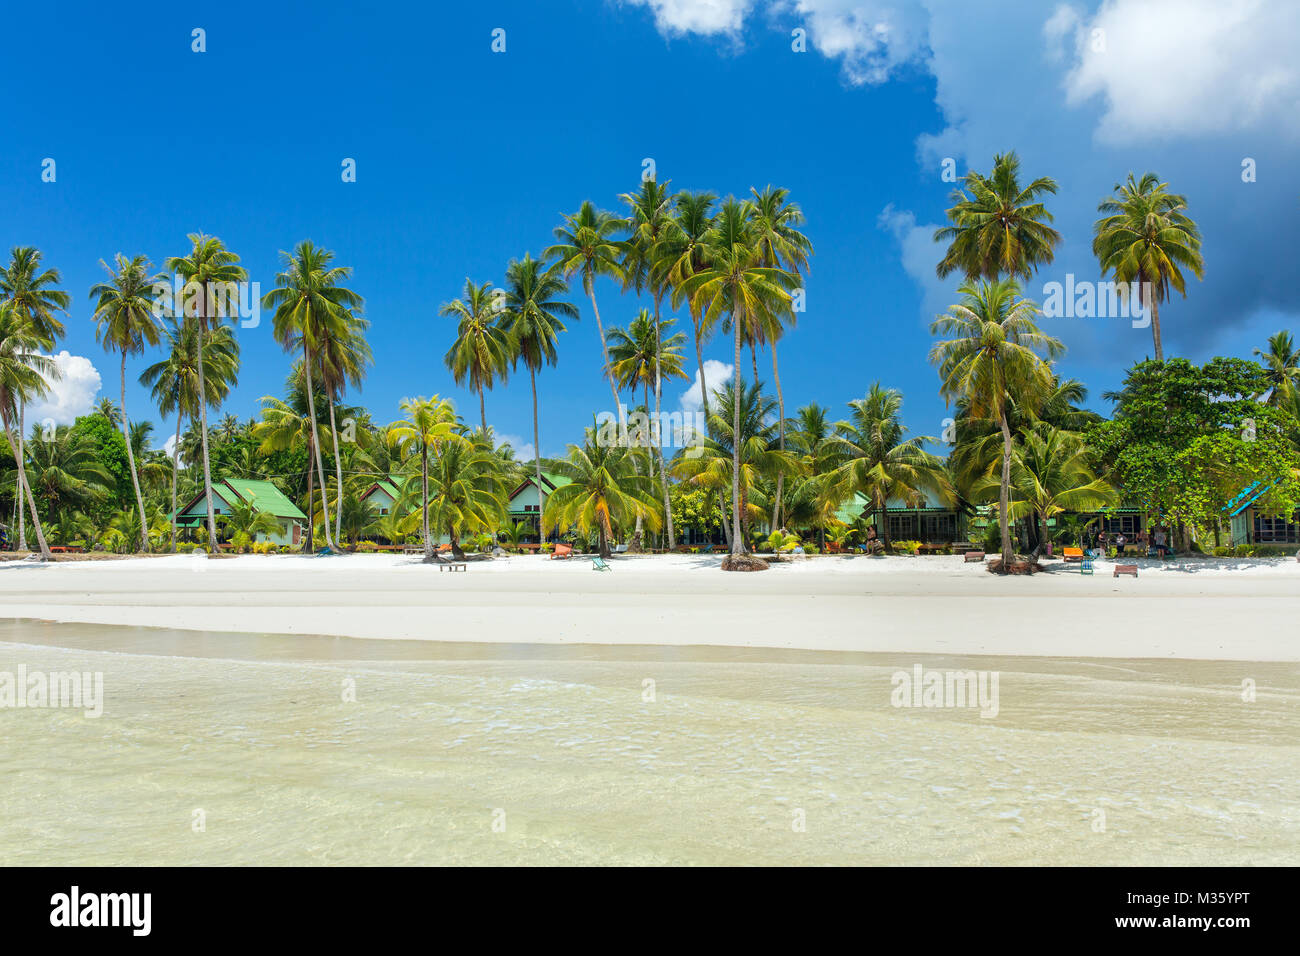 Palm trees on the perfect tropical white sand beach on Koh Kood island in Thailand - Stock Image